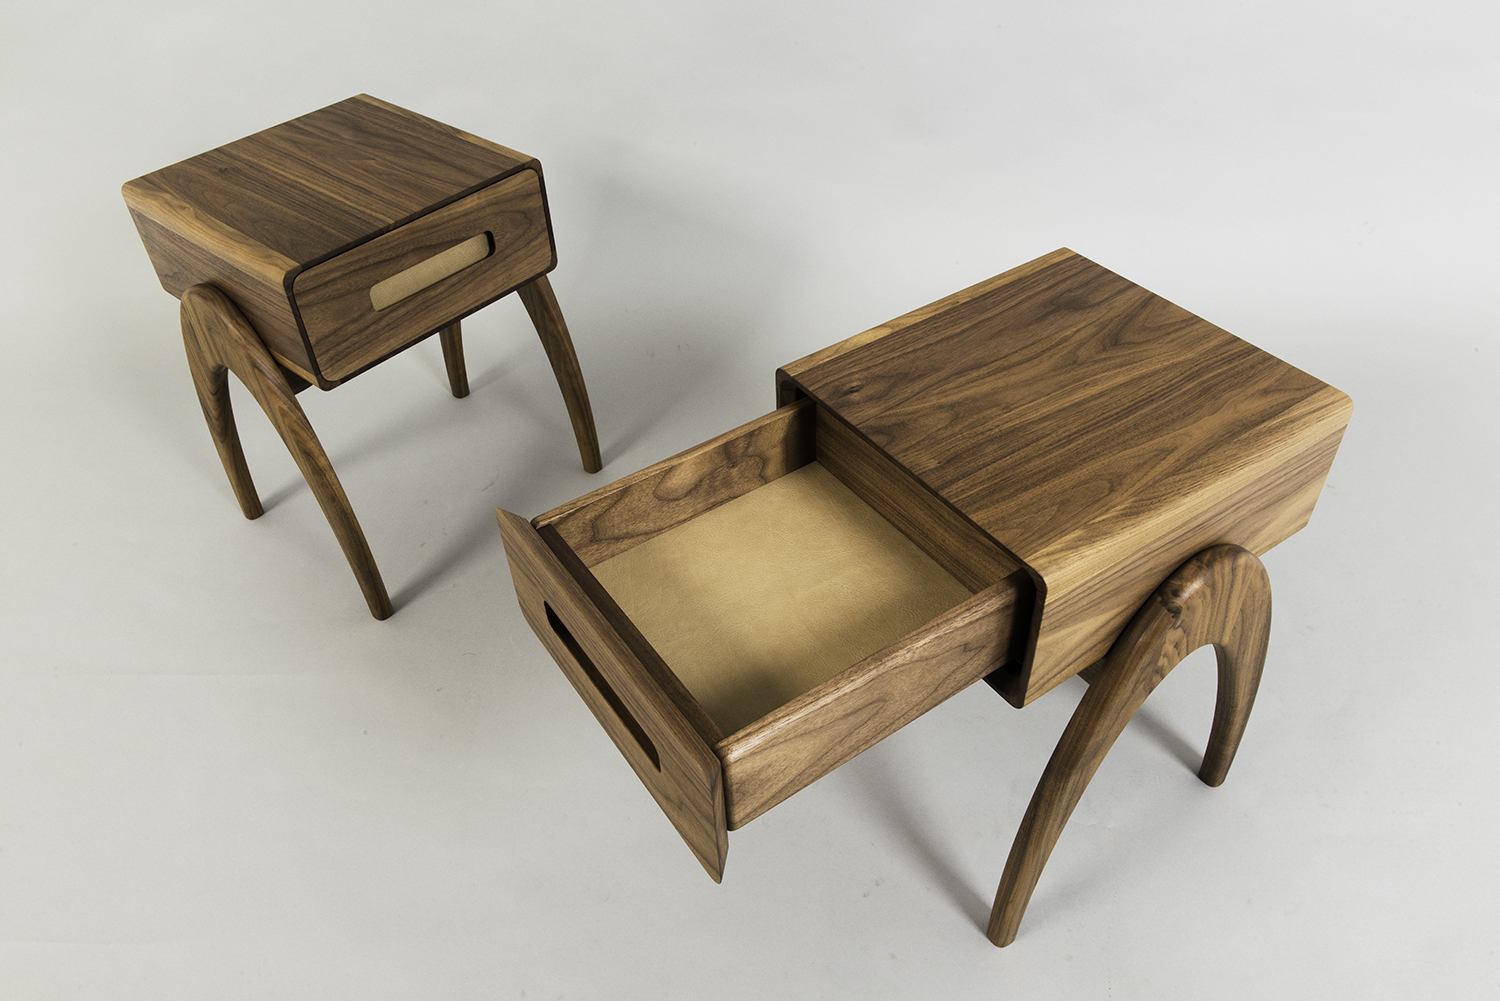 Retrospect Sidetable by Alan Flannery Furniture Design low9.jpg